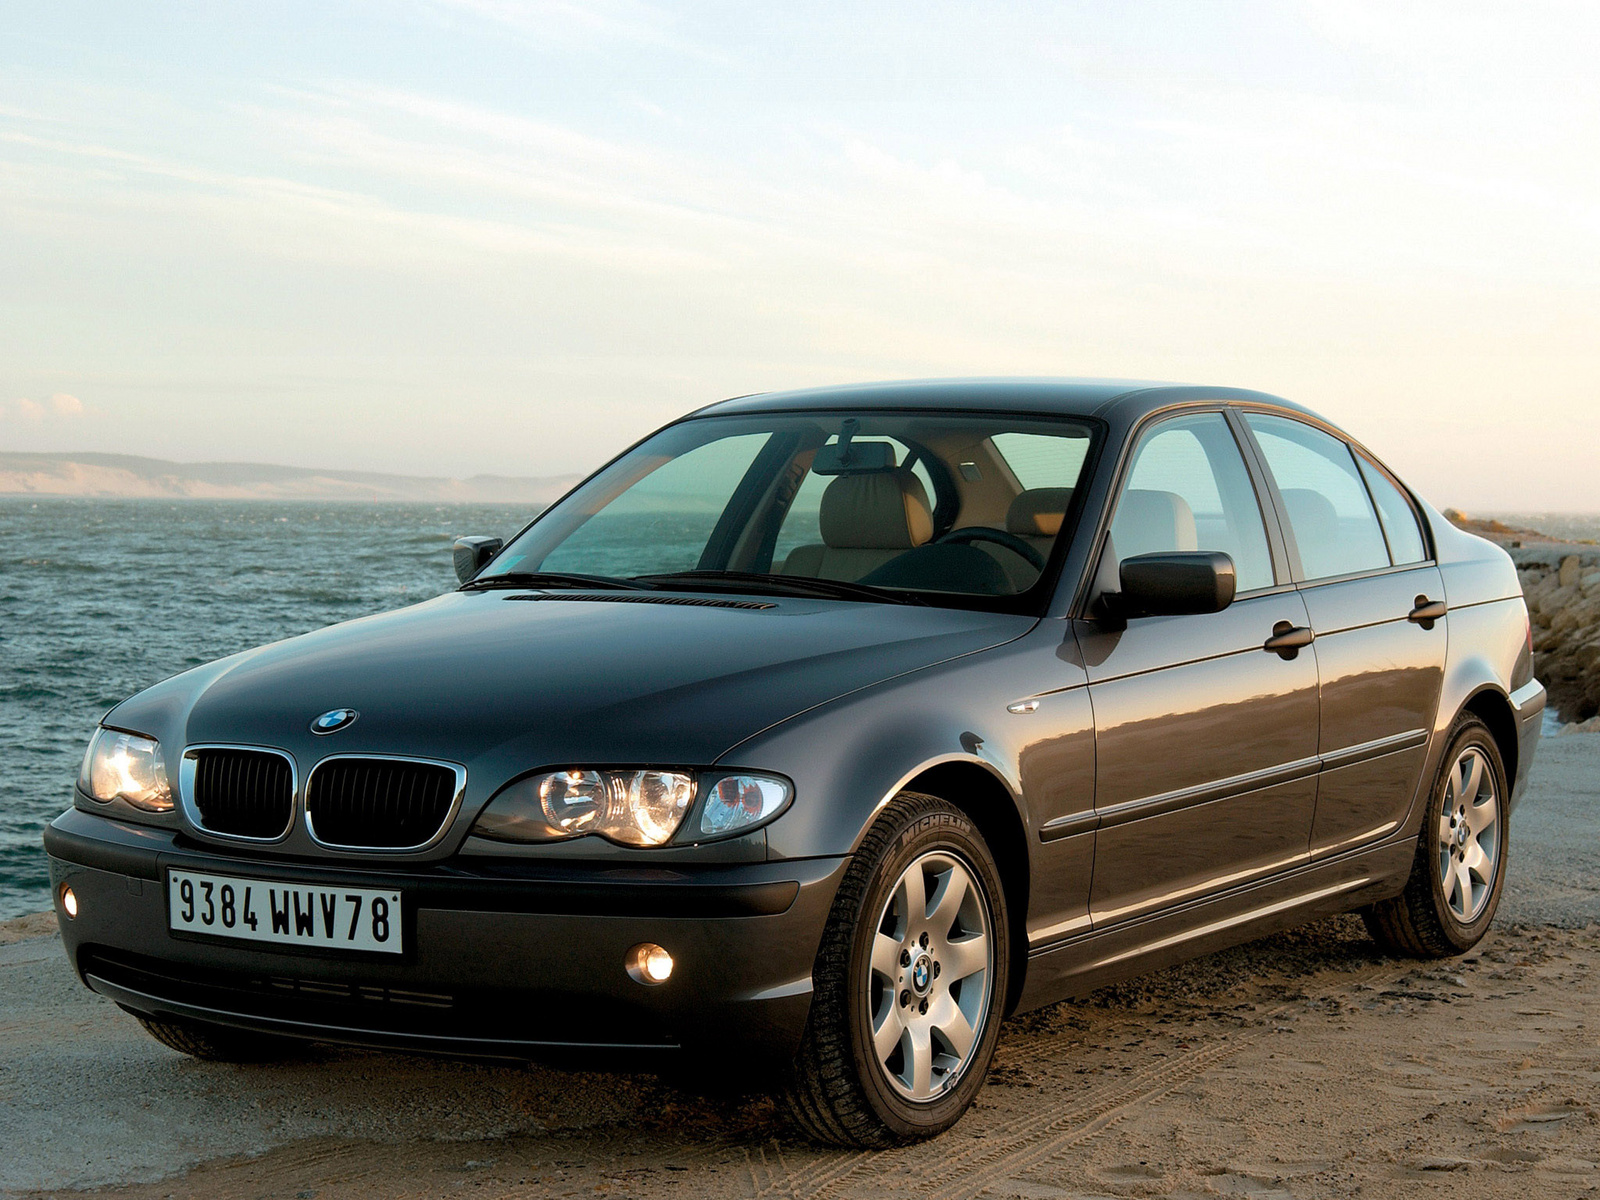 BMW 3 series 320i 2004 photo - 1